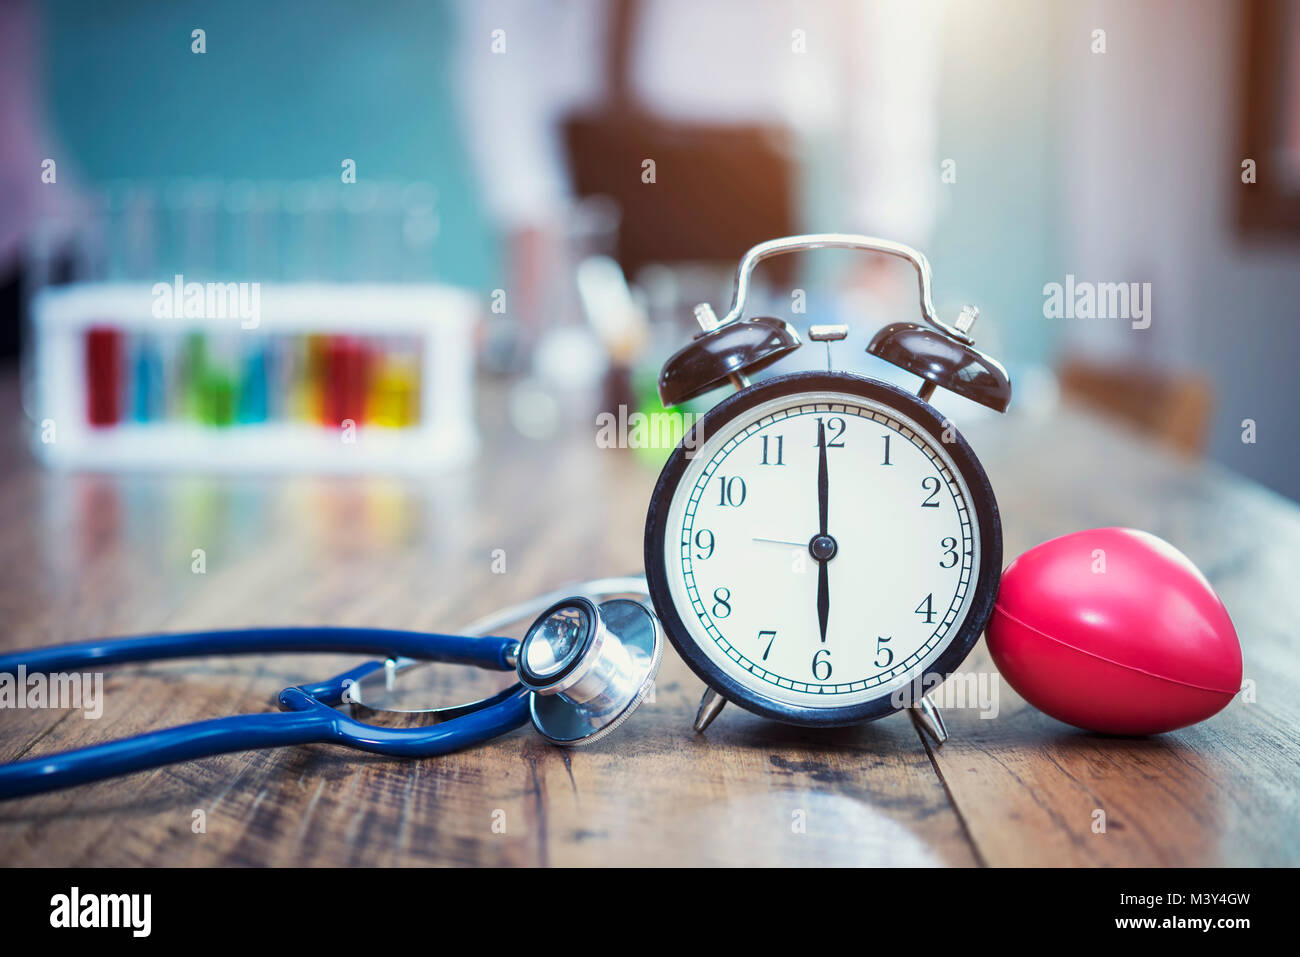 Healthy checking plan concept. Alarm clock with medical instruments stethoscope and red heart on wood table and - Stock Image